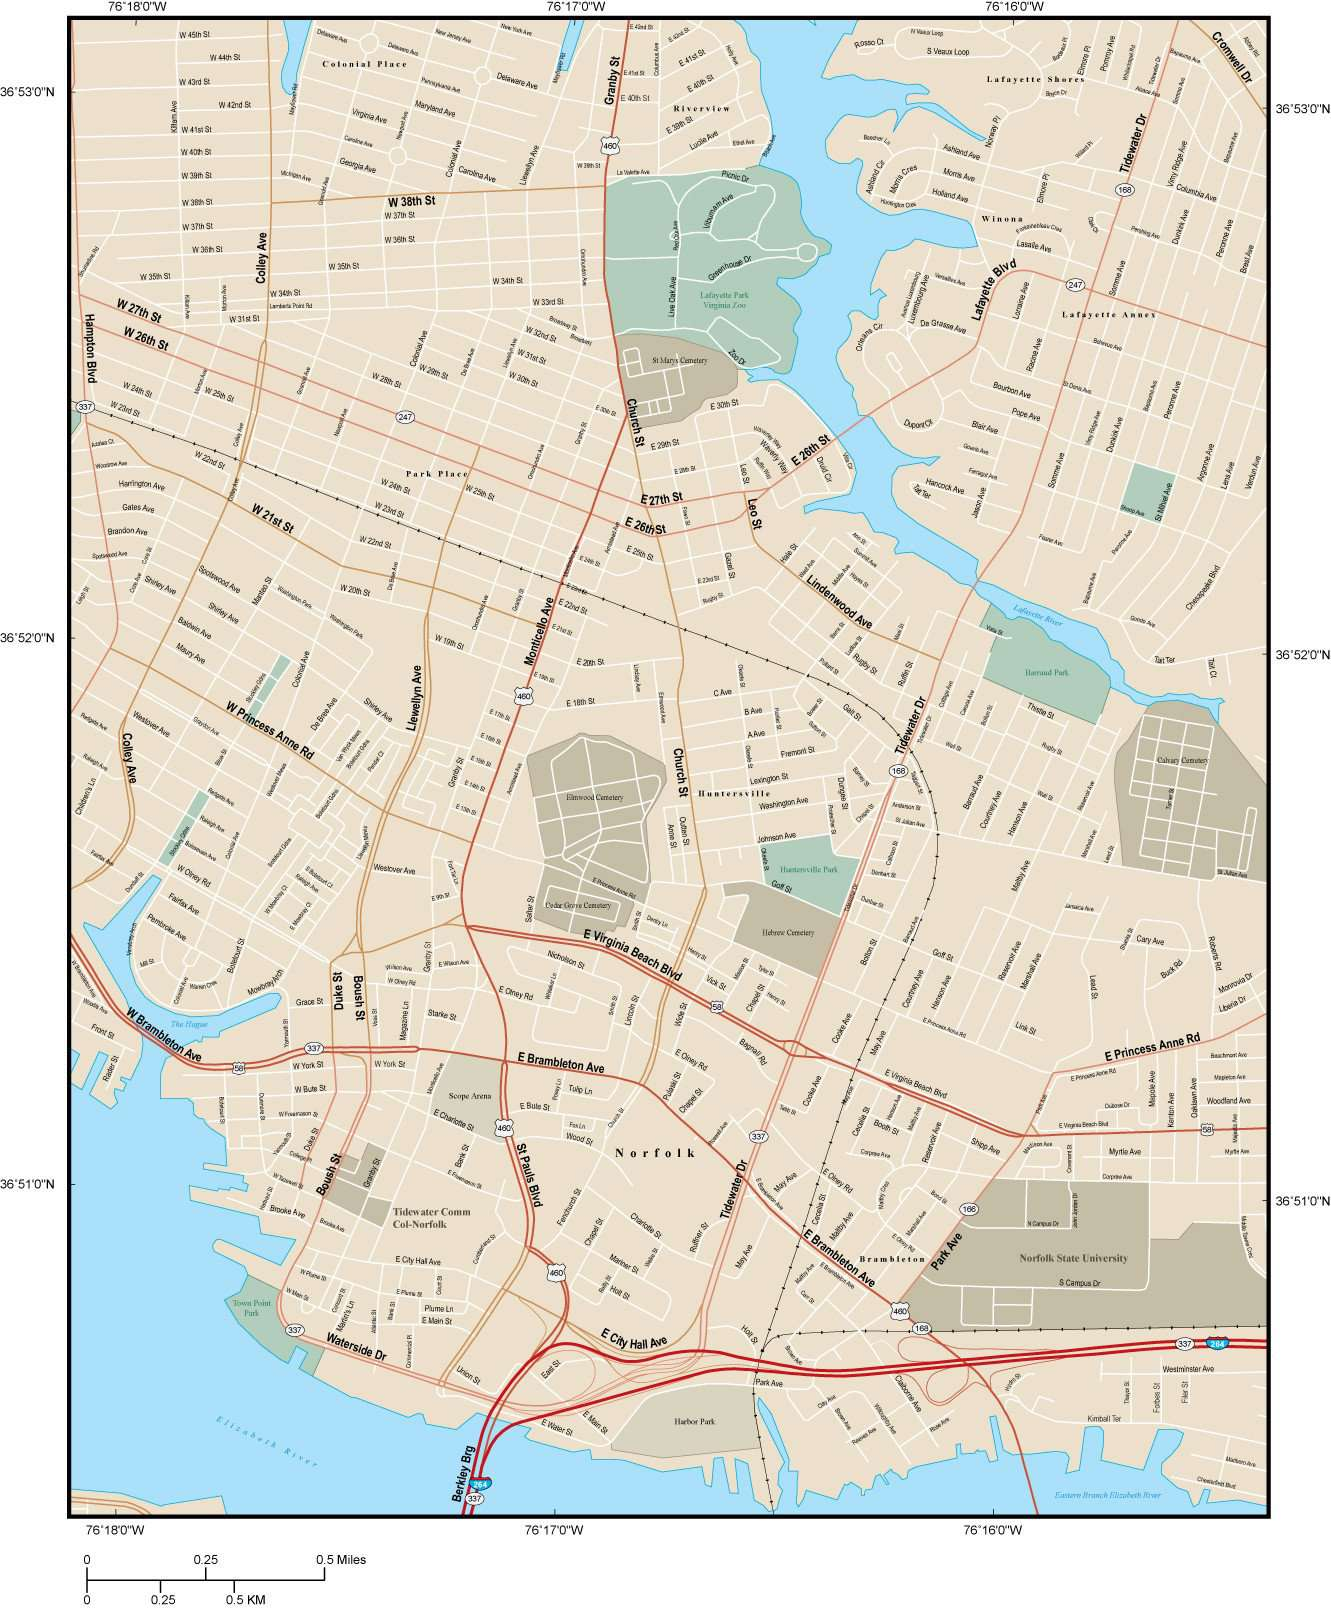 Norfolk VA Map - City Center - 9 square miles - with Local Streets